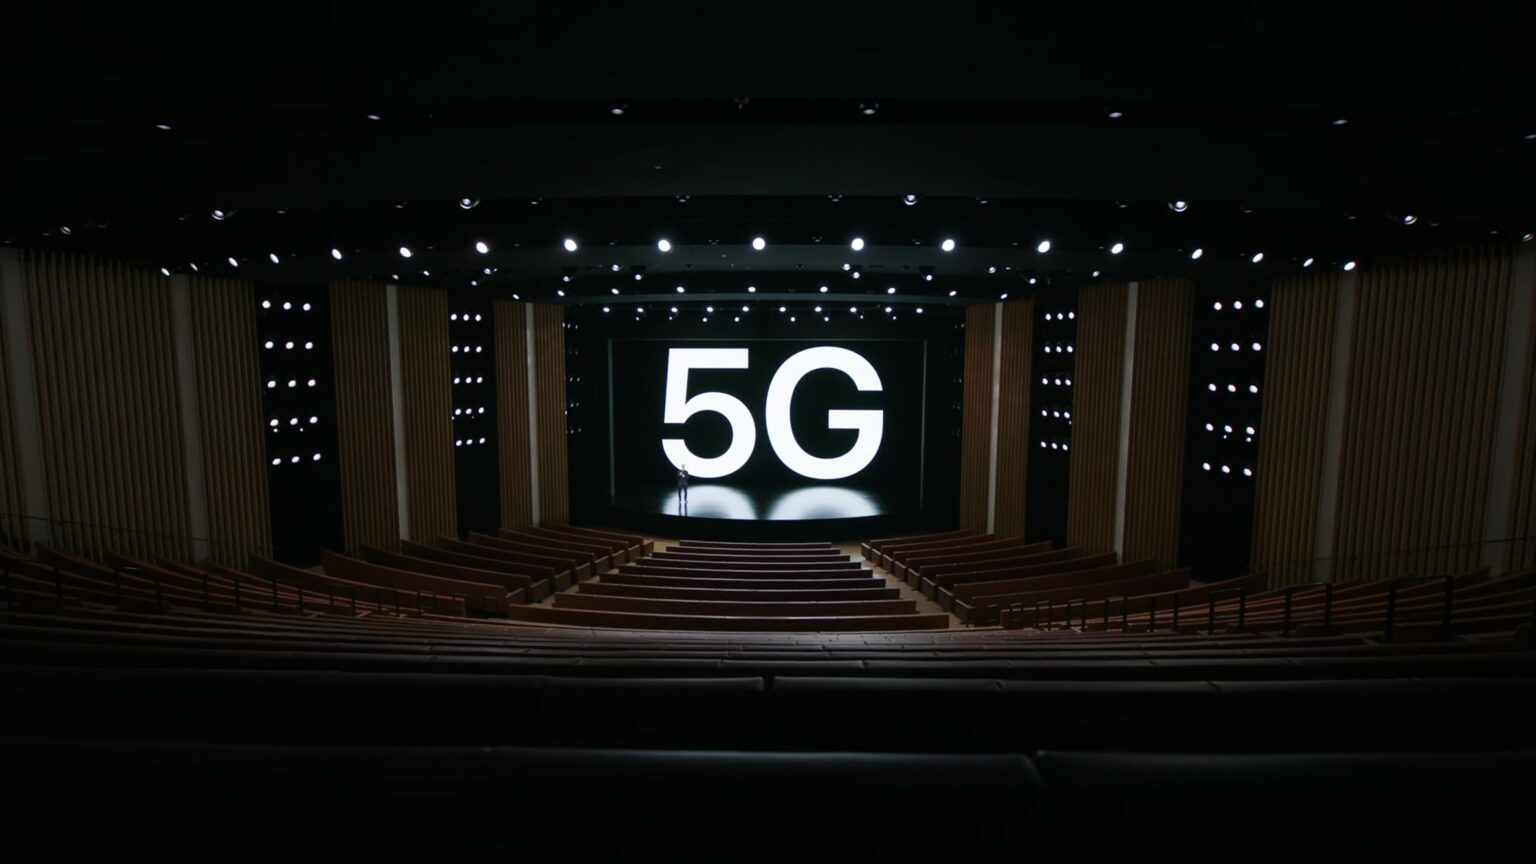 Apple isn't exactly subtle about pushing high-speed 5G networking. These 5G supercuts from the